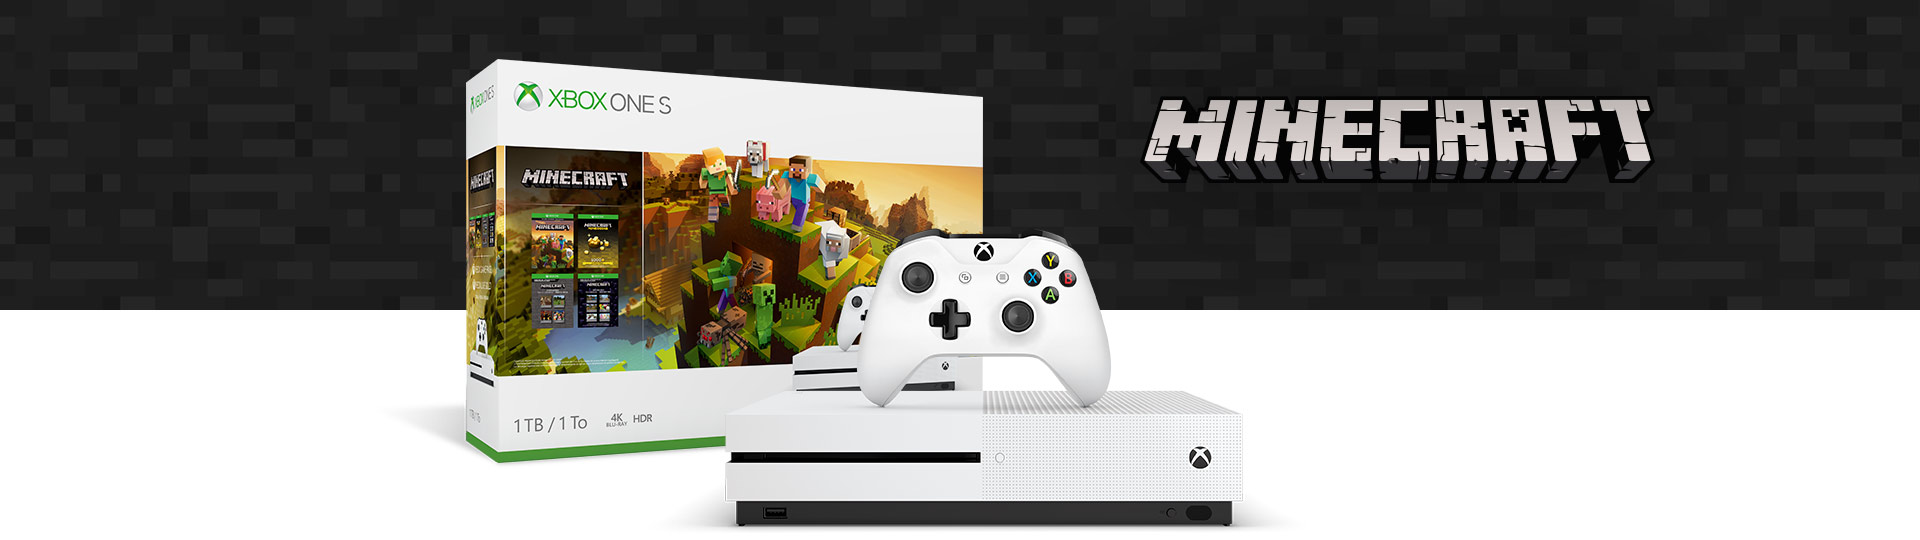 Xbox One S 1tb Minecraft Bundle Box Only Microsoft